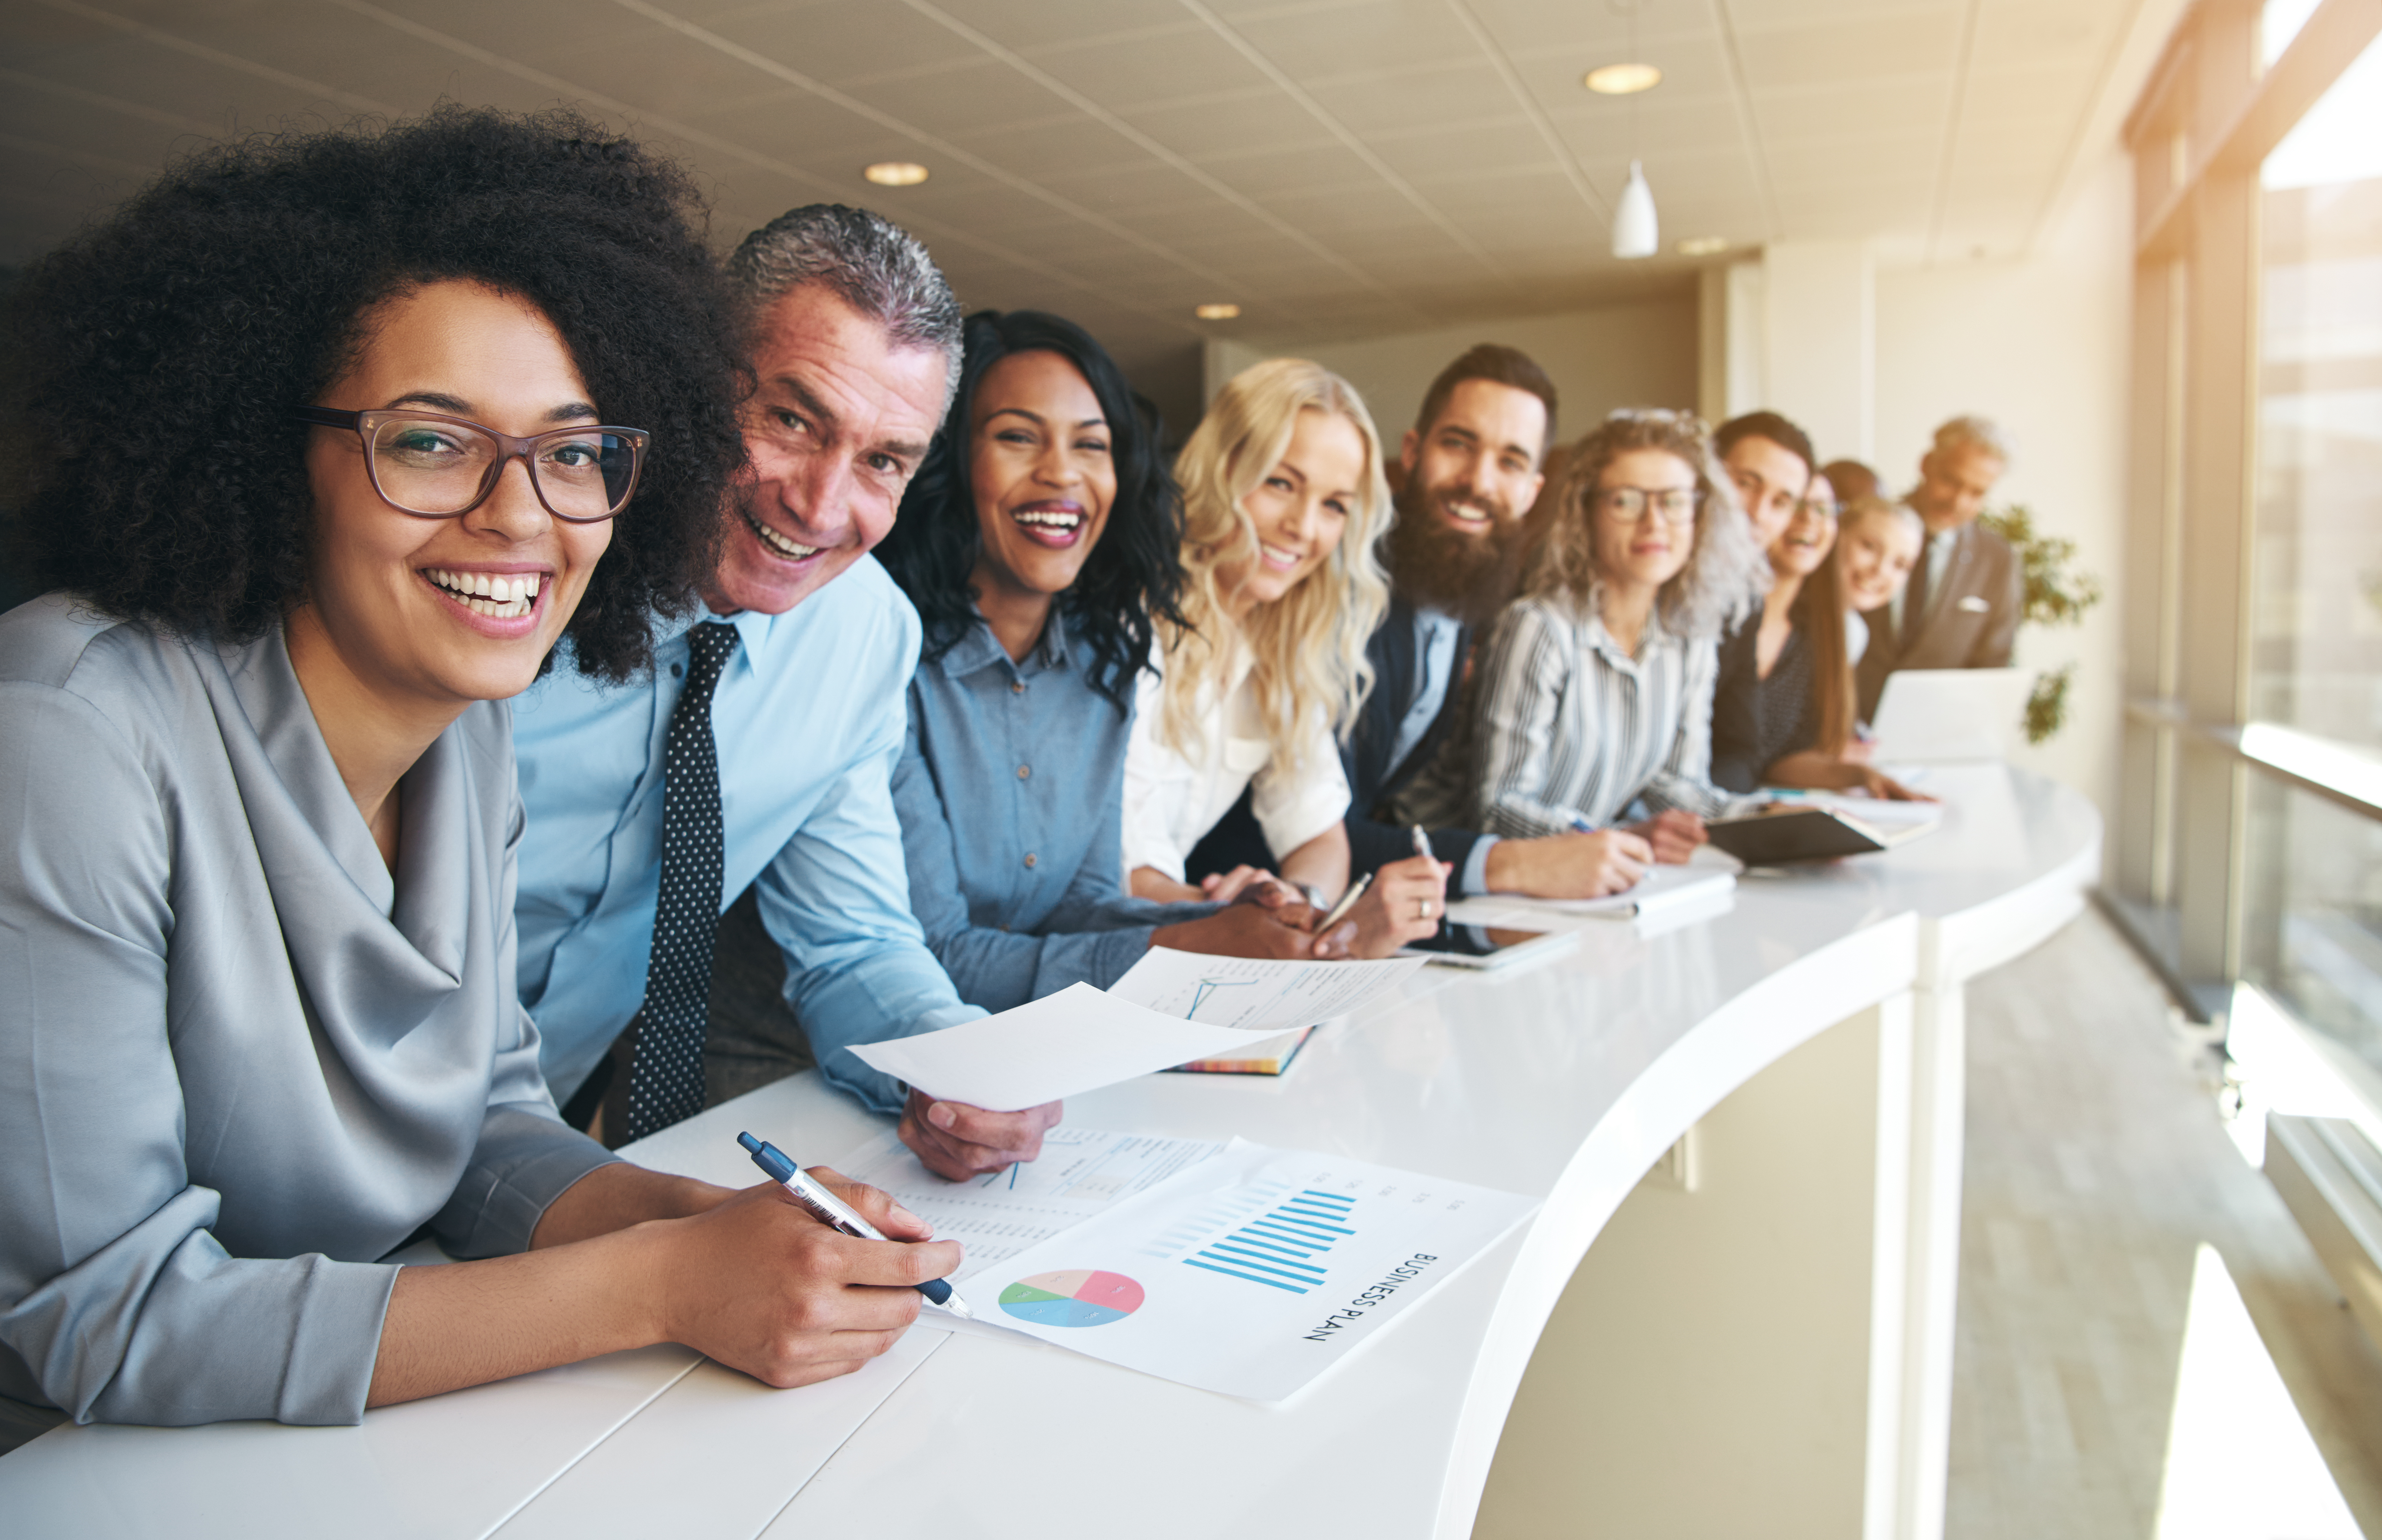 Which metrics to track when it comes to employee engagement